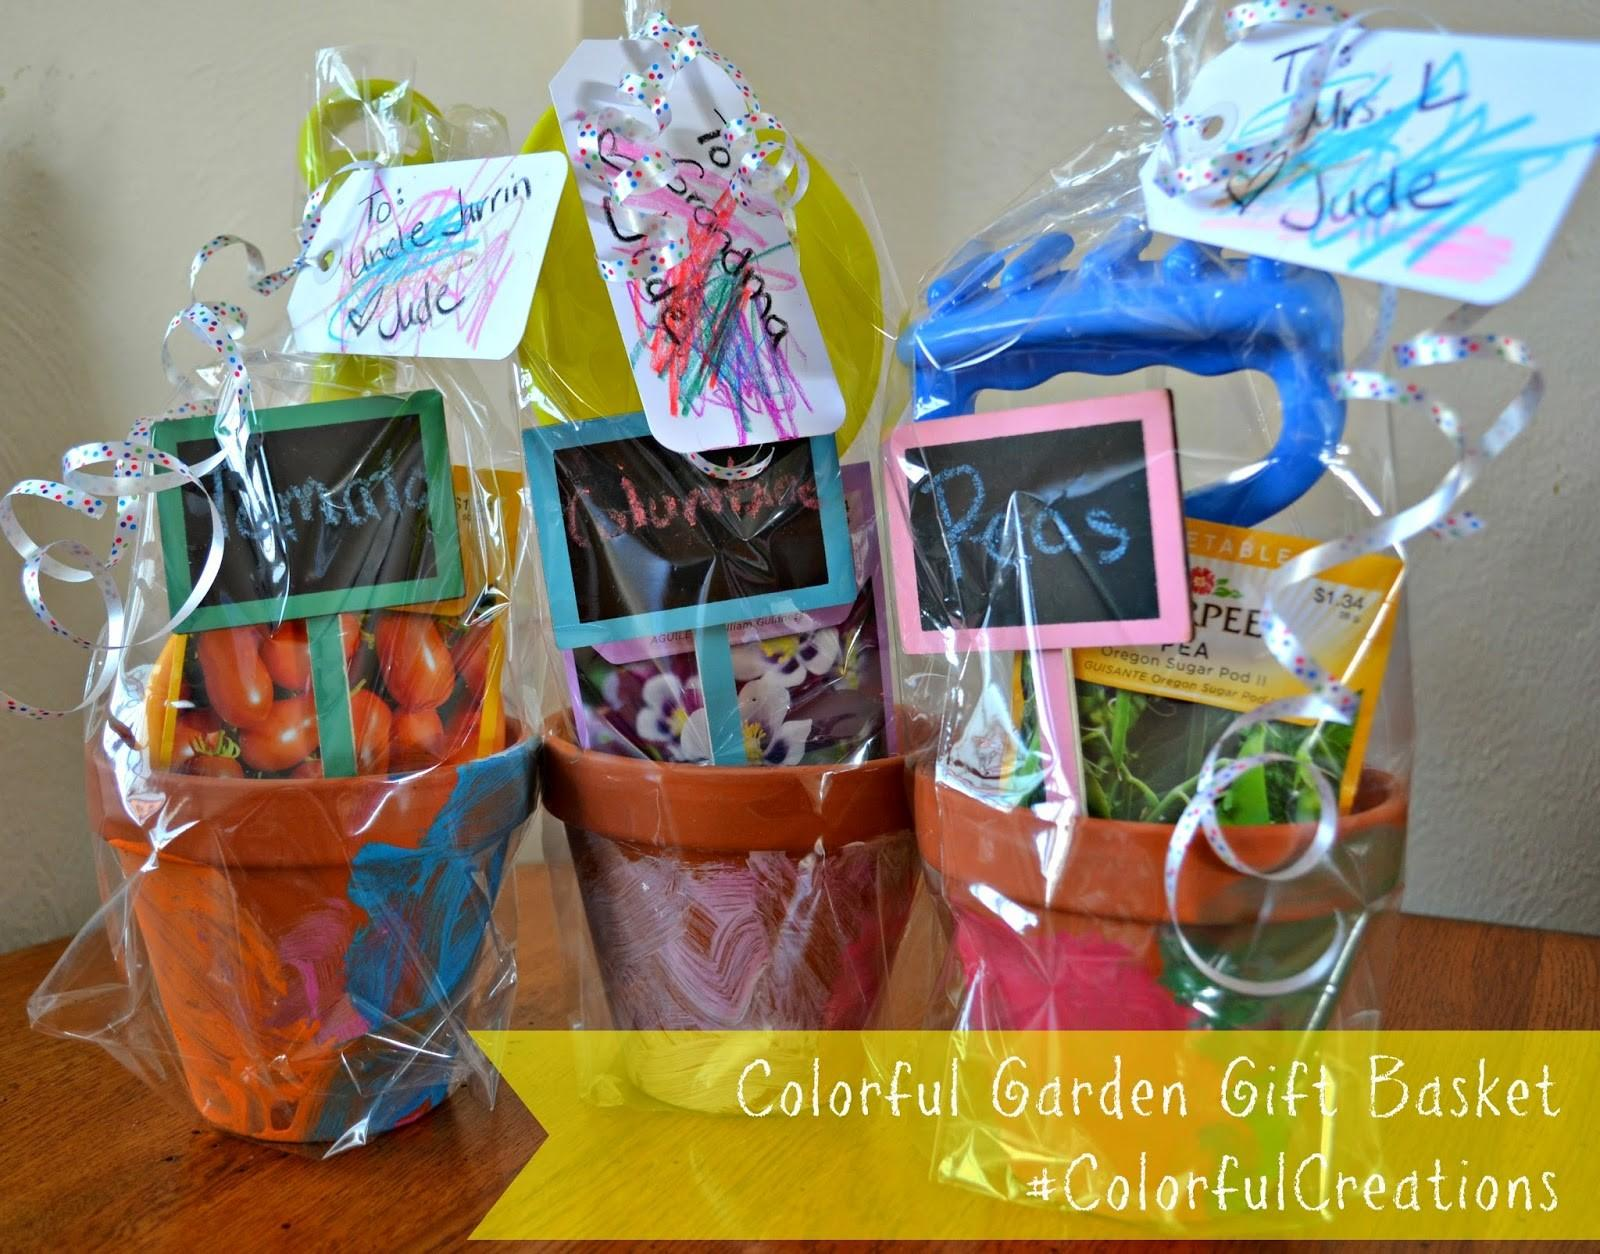 Creating Colorful Garden Gift Basket Using Crayola